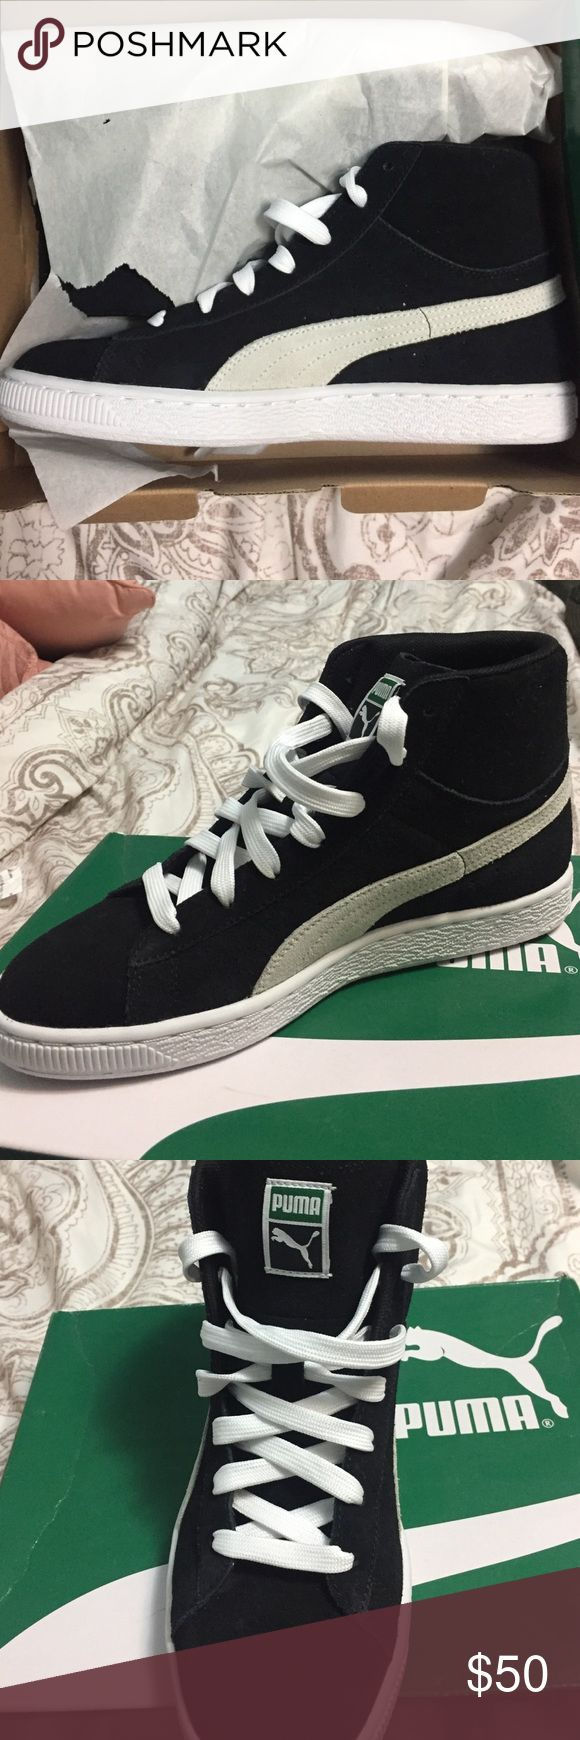 Details about puma womens suede classic rg black running shoes - Puma Black White Size 6 5 Classic New Puma Suede Classic Hightop Size 6 5 In Mens